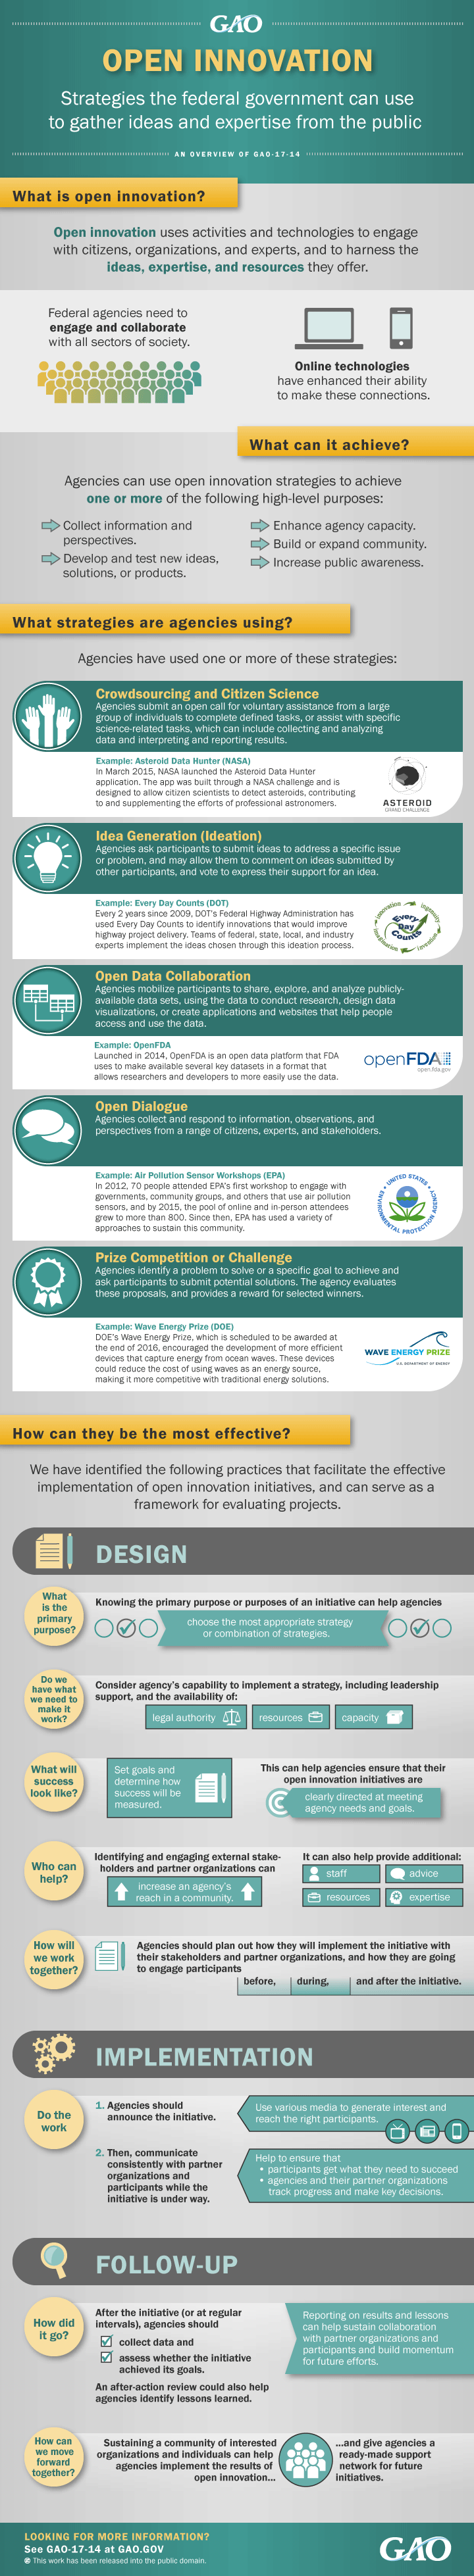 Open Innovation infographic